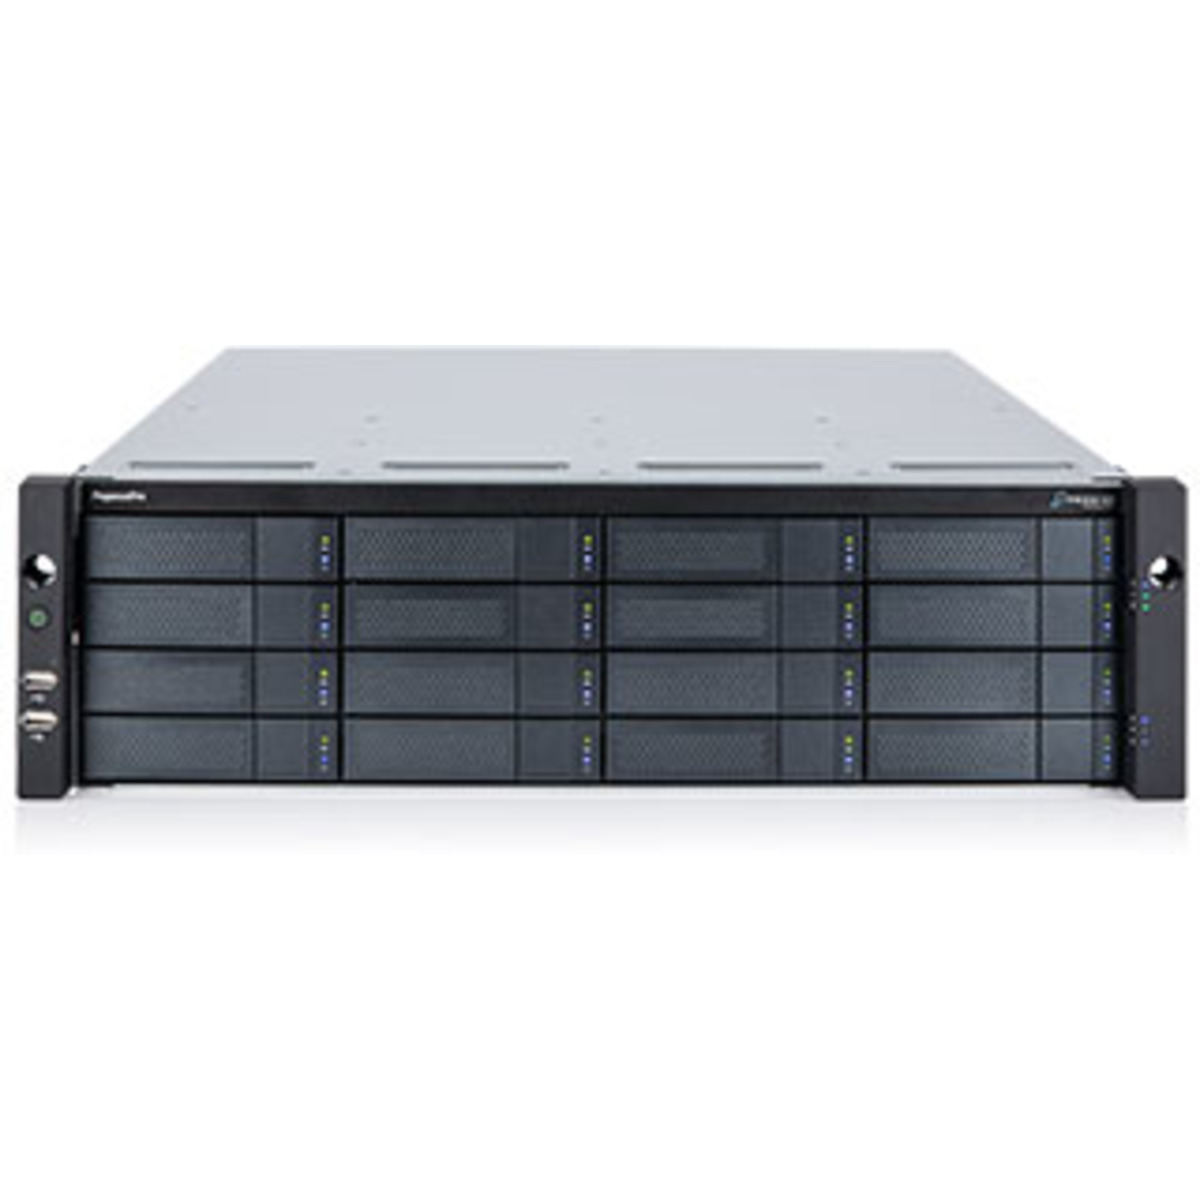 buy $13327 Promise Technology PegasusPro R16 30tb RackMount DAS-NAS - Combo Direct + Network Storage Device 15x2000gb Crucial MX500 CT2000MX500SSD1 2.5 SATA 6Gb/s SSD CONSUMER Class Drives Installed - Burn-In Tested - ON SALE - nas headquarters buy network attached storage server device das new raid-5 free shipping usa holiday new year clearance sale PegasusPro R16